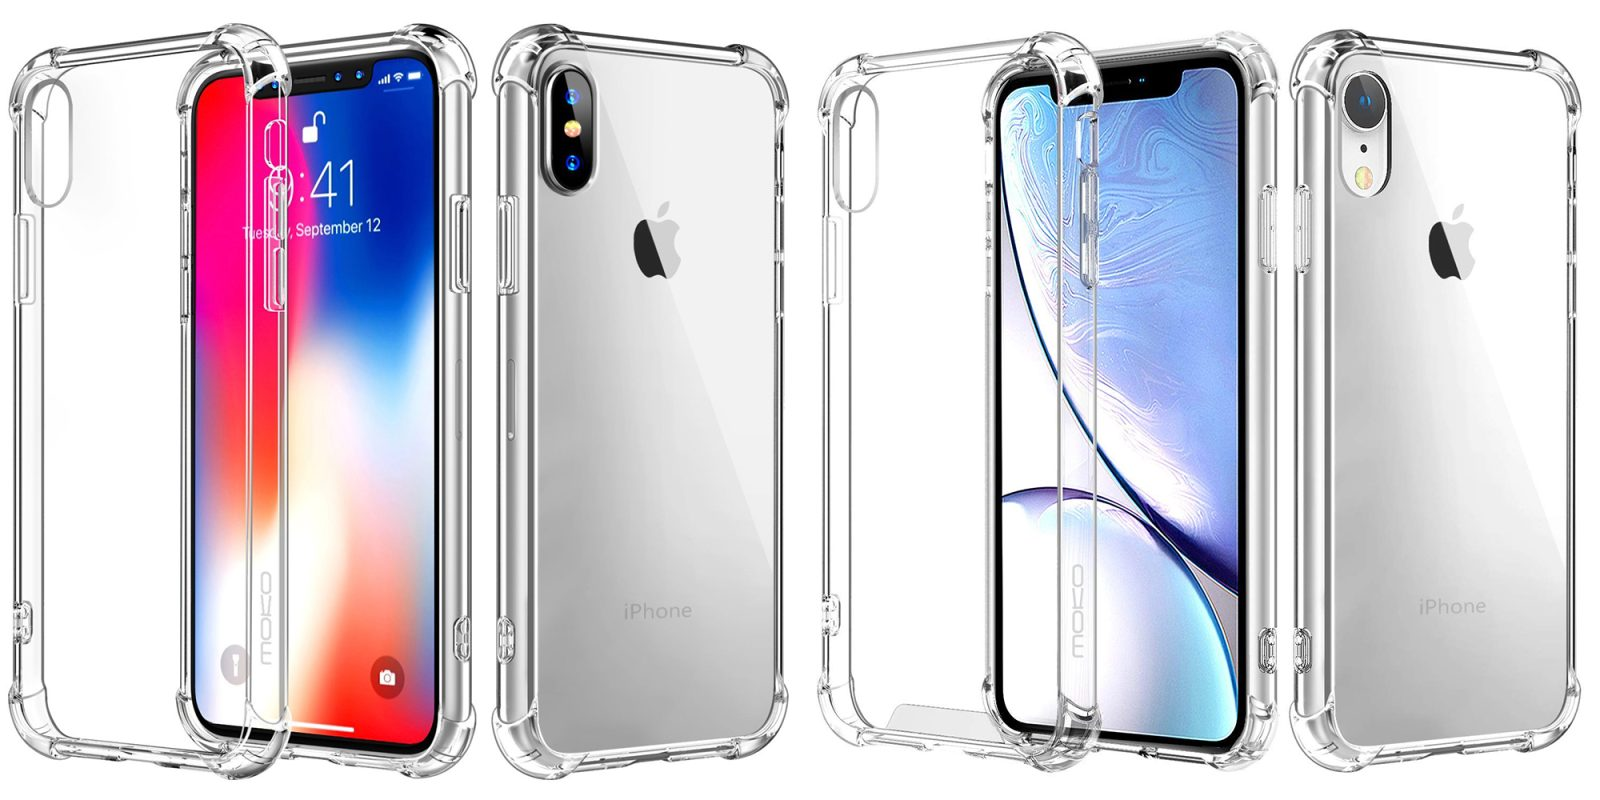 size 40 42d0b 09b7e Outfit your new iPhone XS/Max/R with a clear case bumper from $4 ...